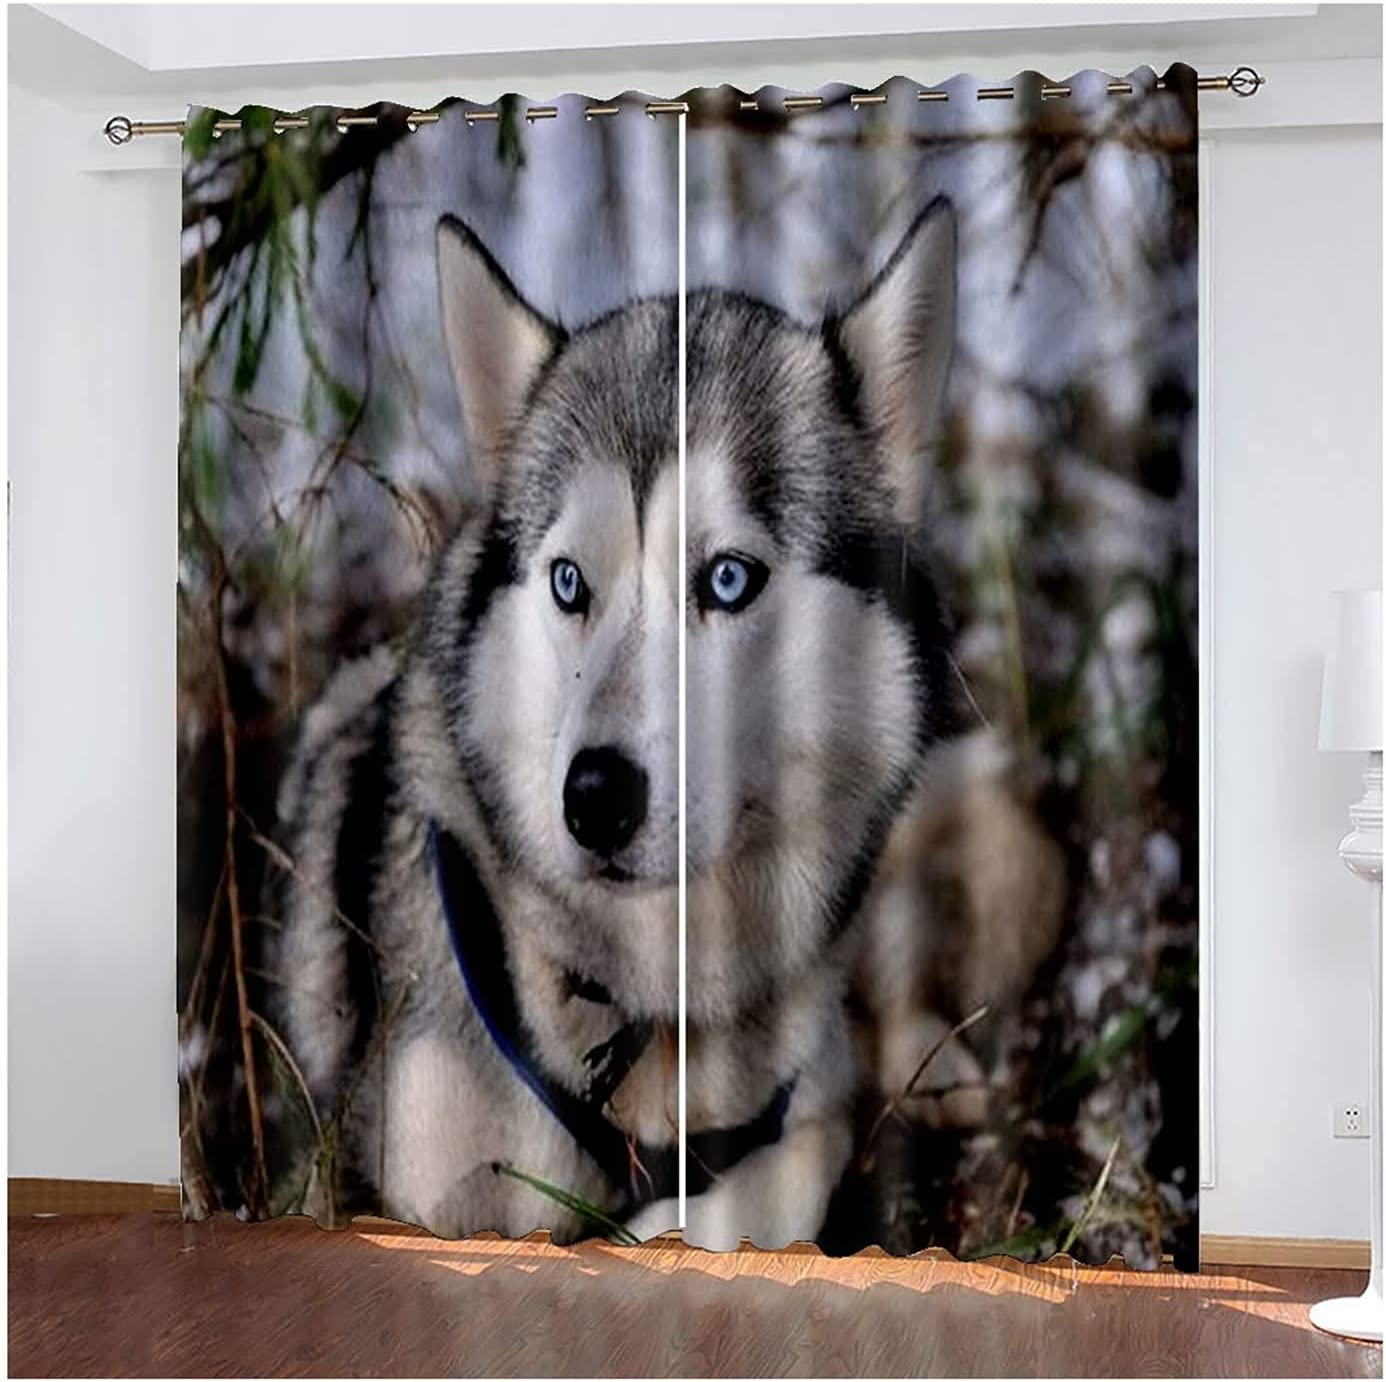 Drapes for Bedroom 2 Panels Windo Blackout Dog 35% OFF Curtains Max 75% OFF